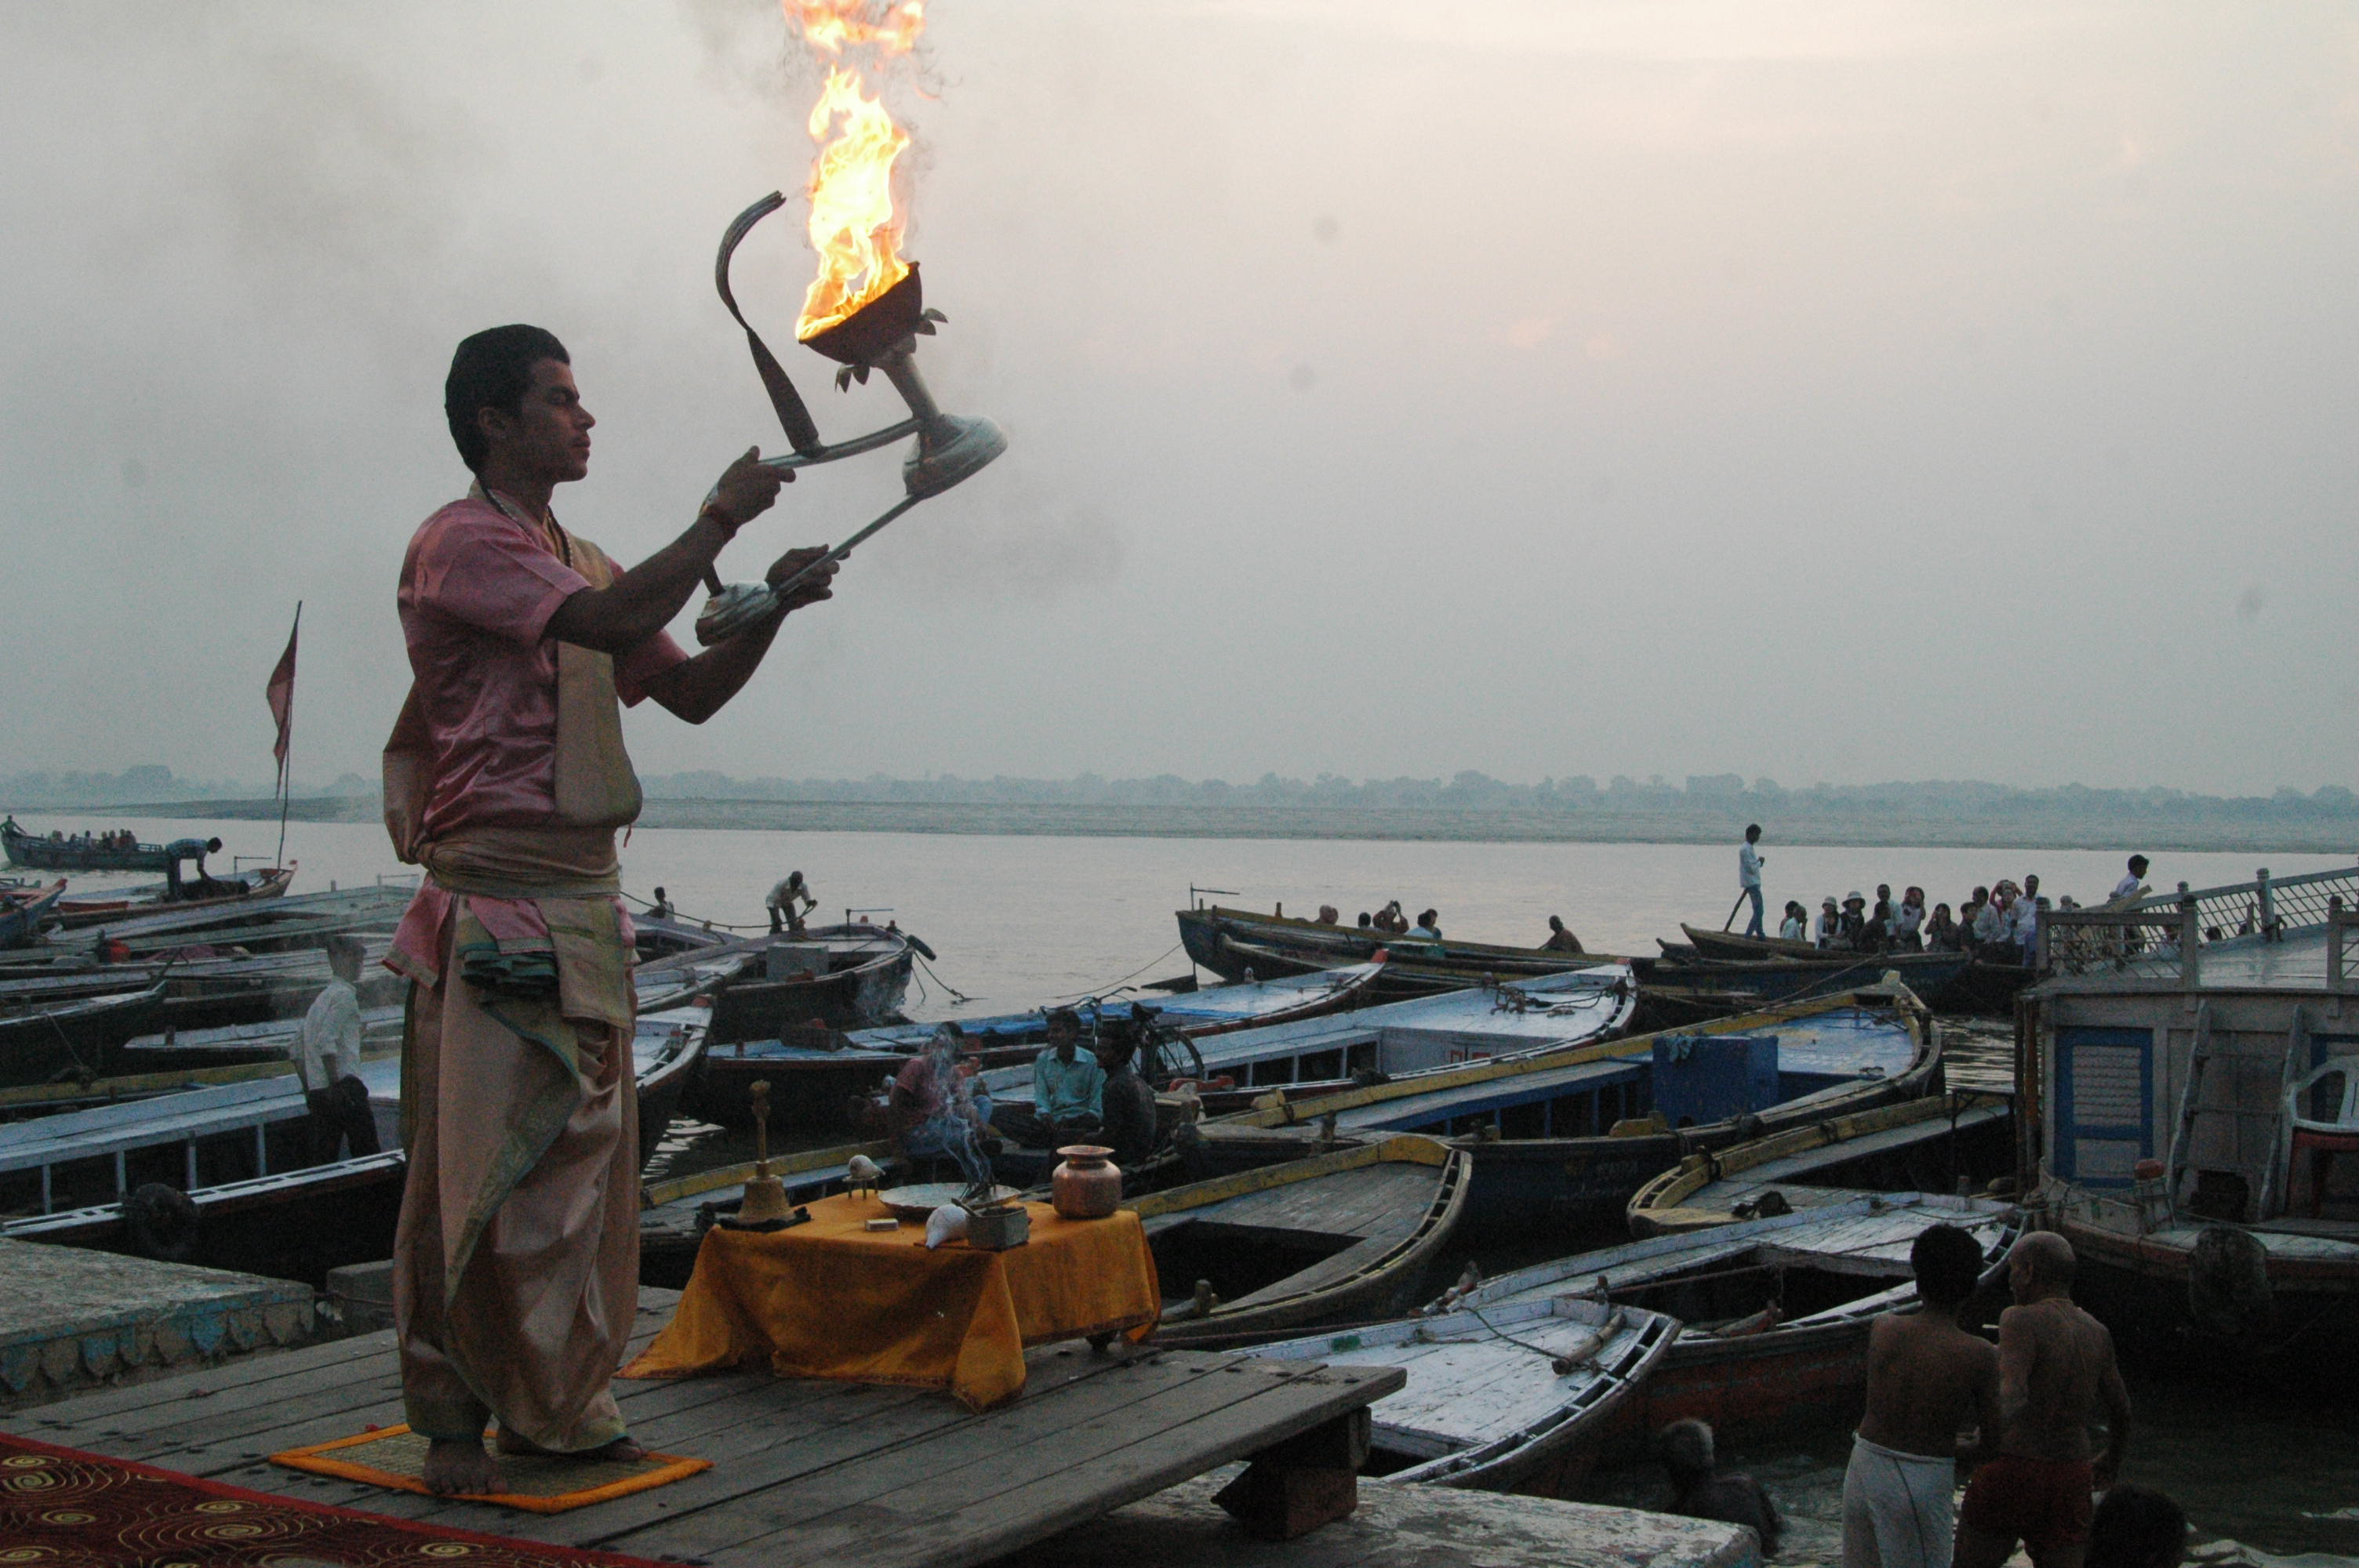 Civilizations are born around water - Varanasi, India